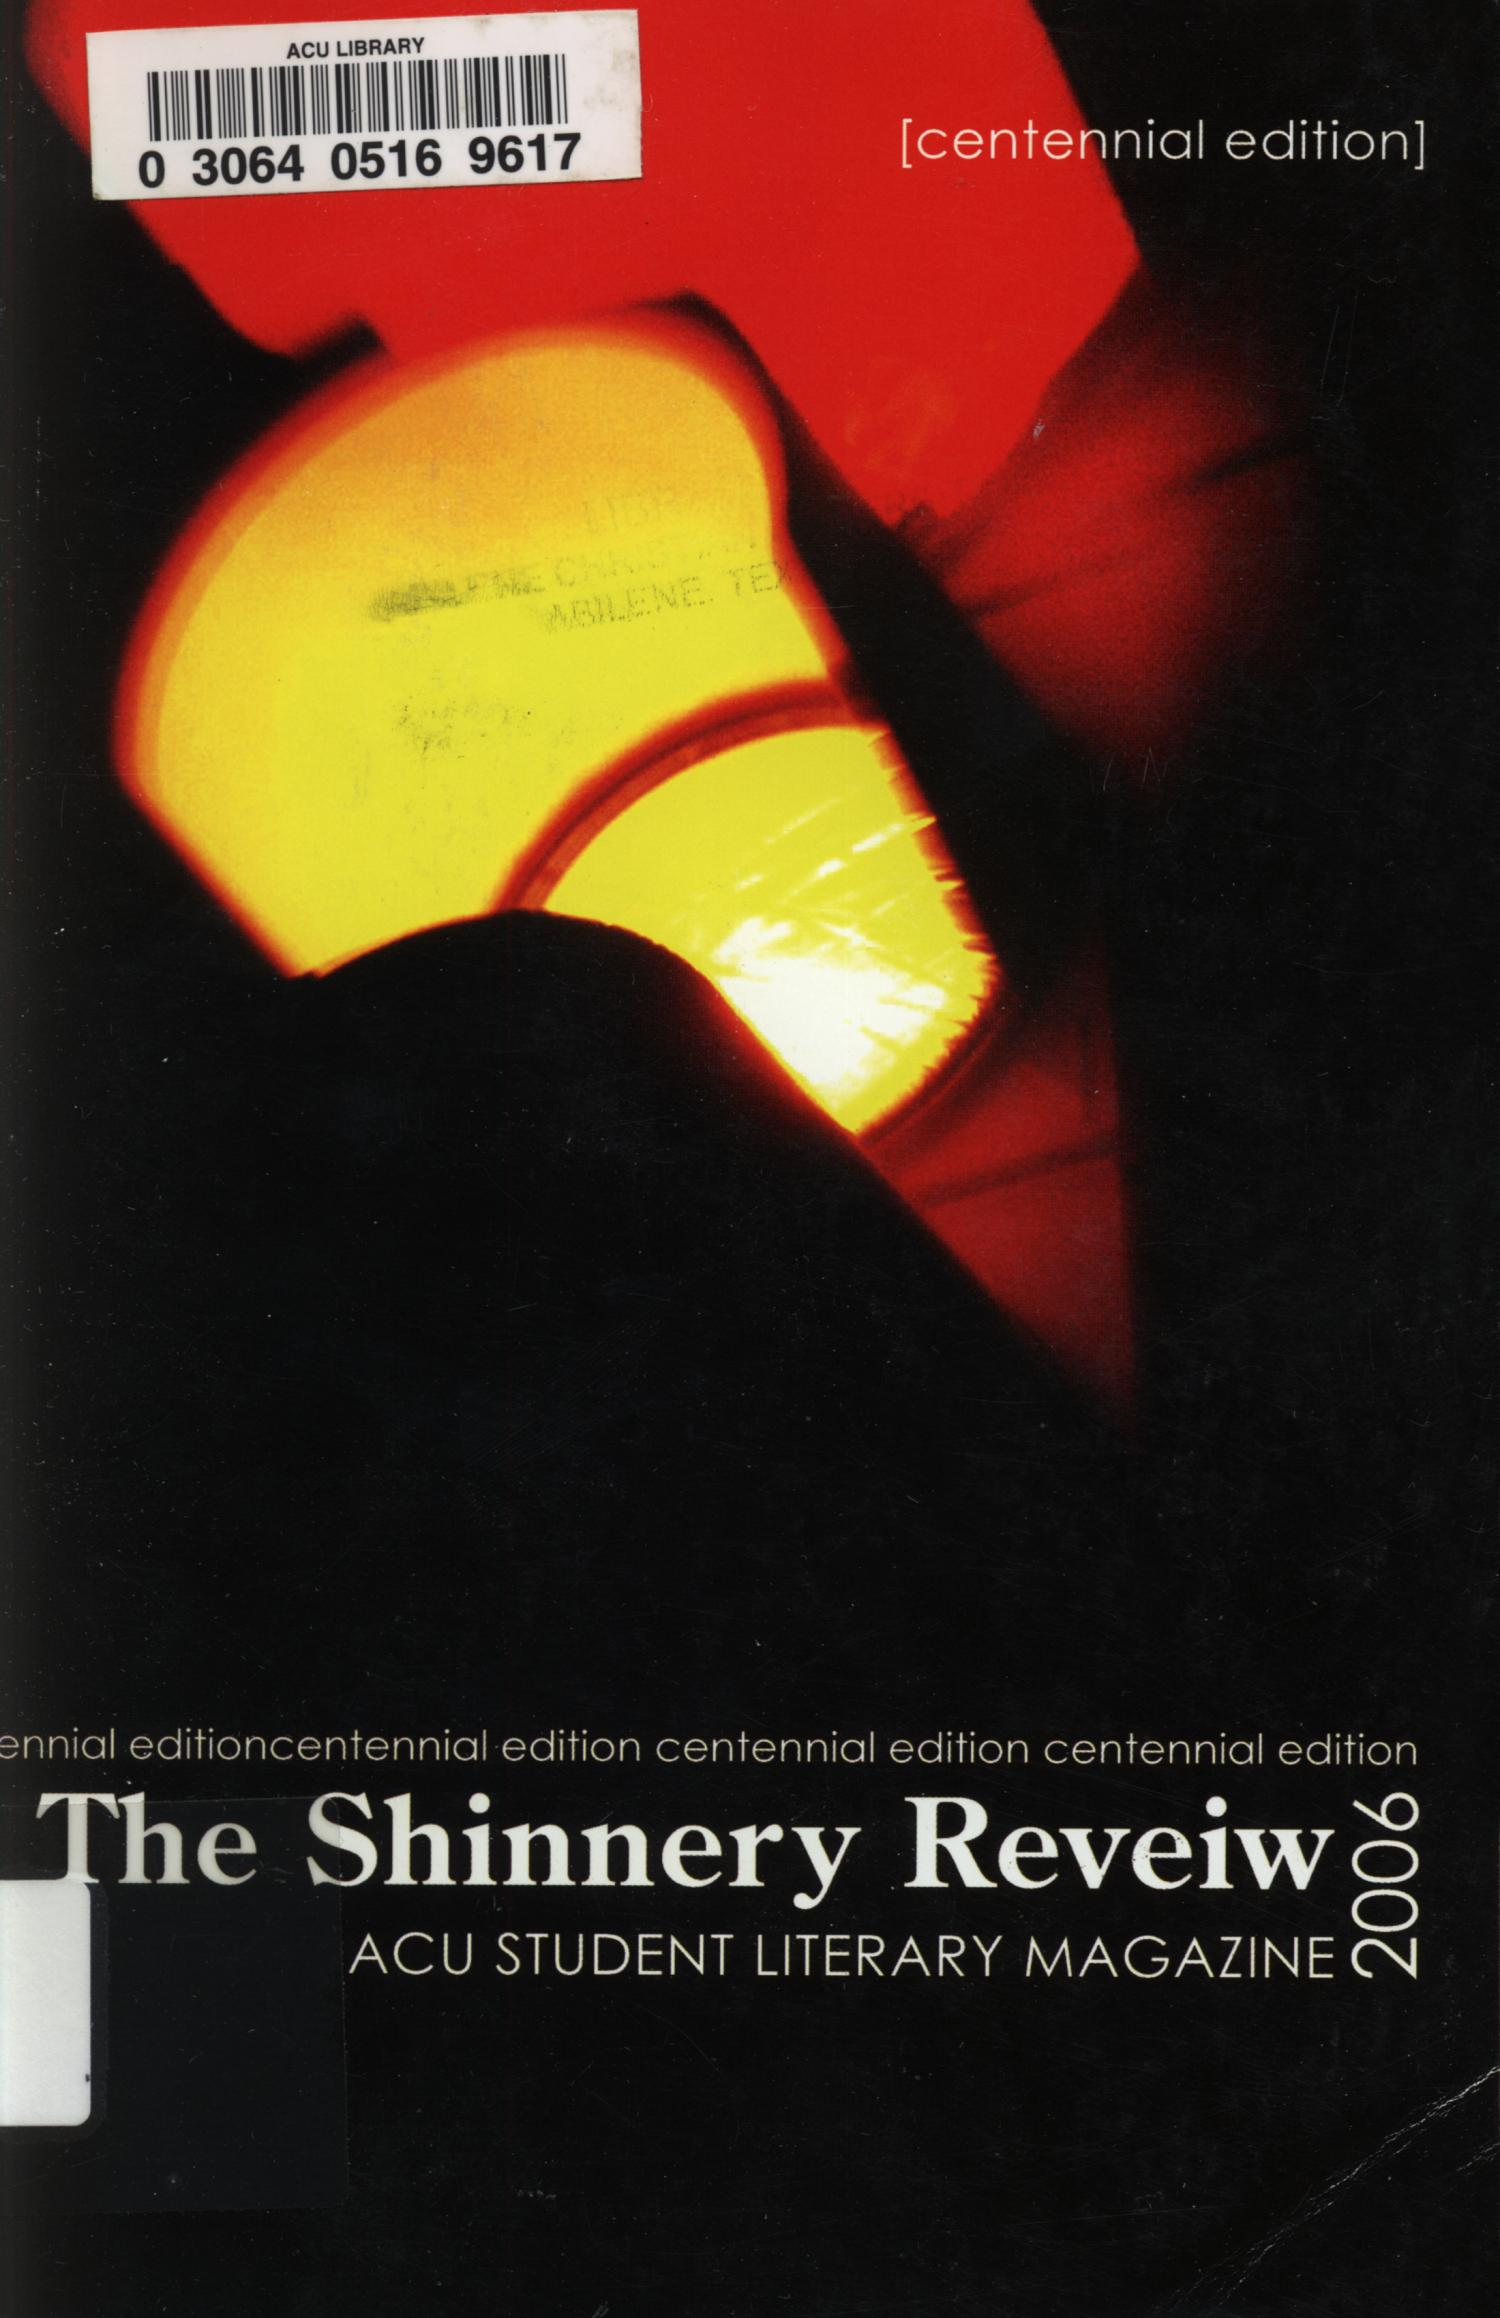 The Shinnery Review, 2006                                                                                                      Front Cover